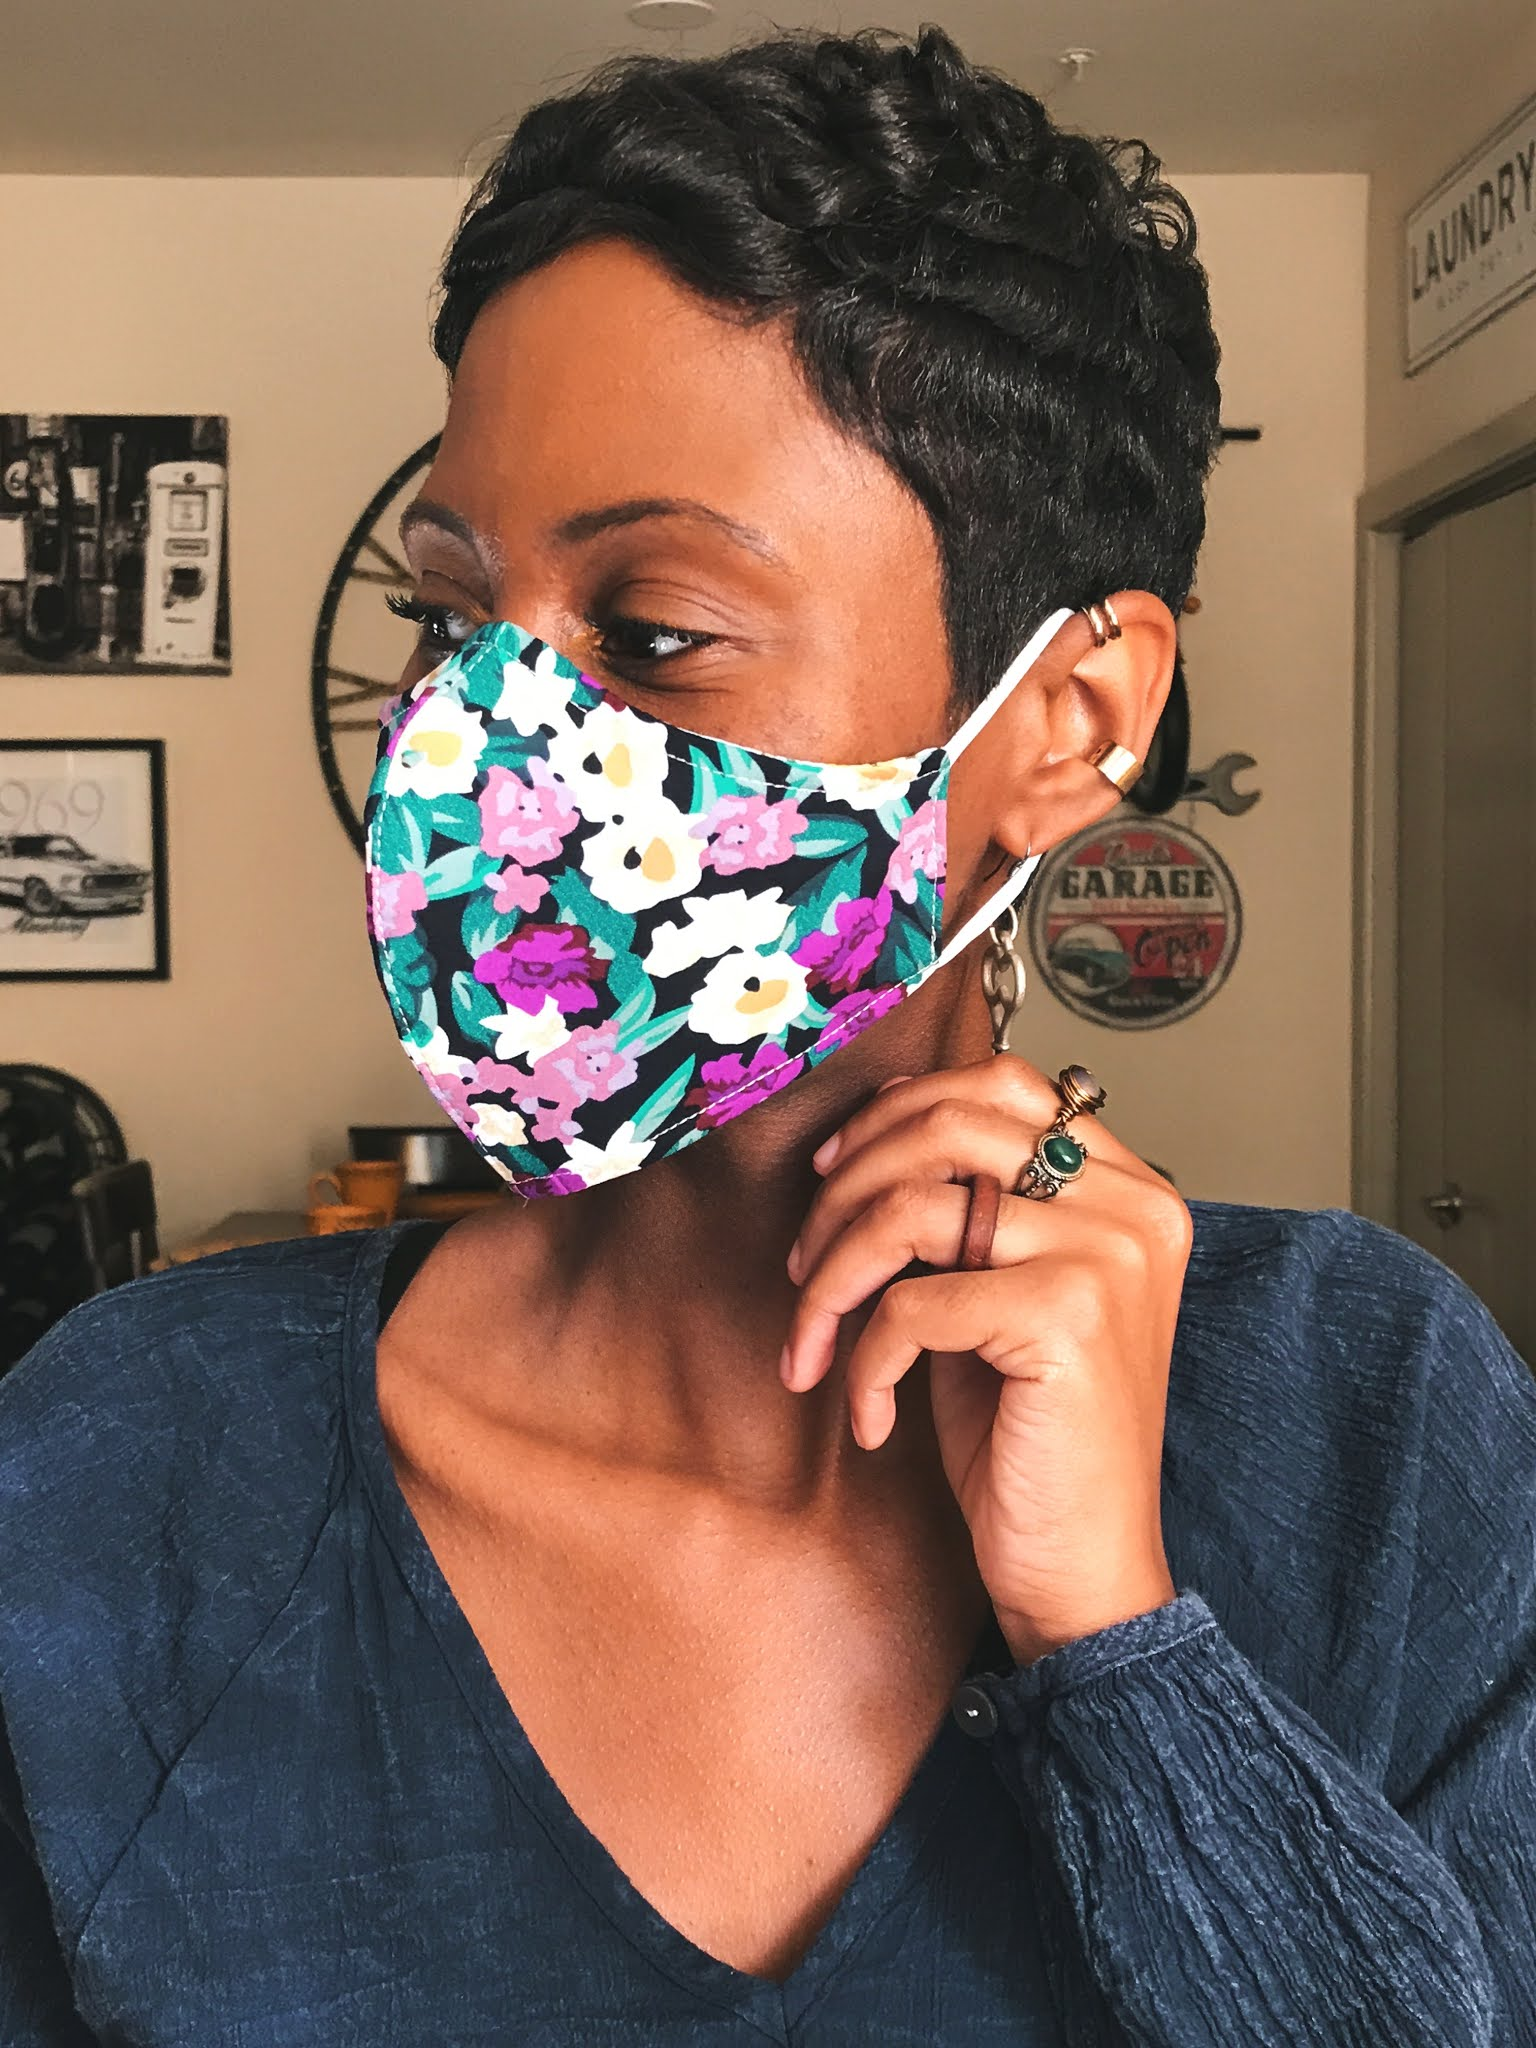 Reversible Floral Face Masks That Make You Feel Stylish And Fierce